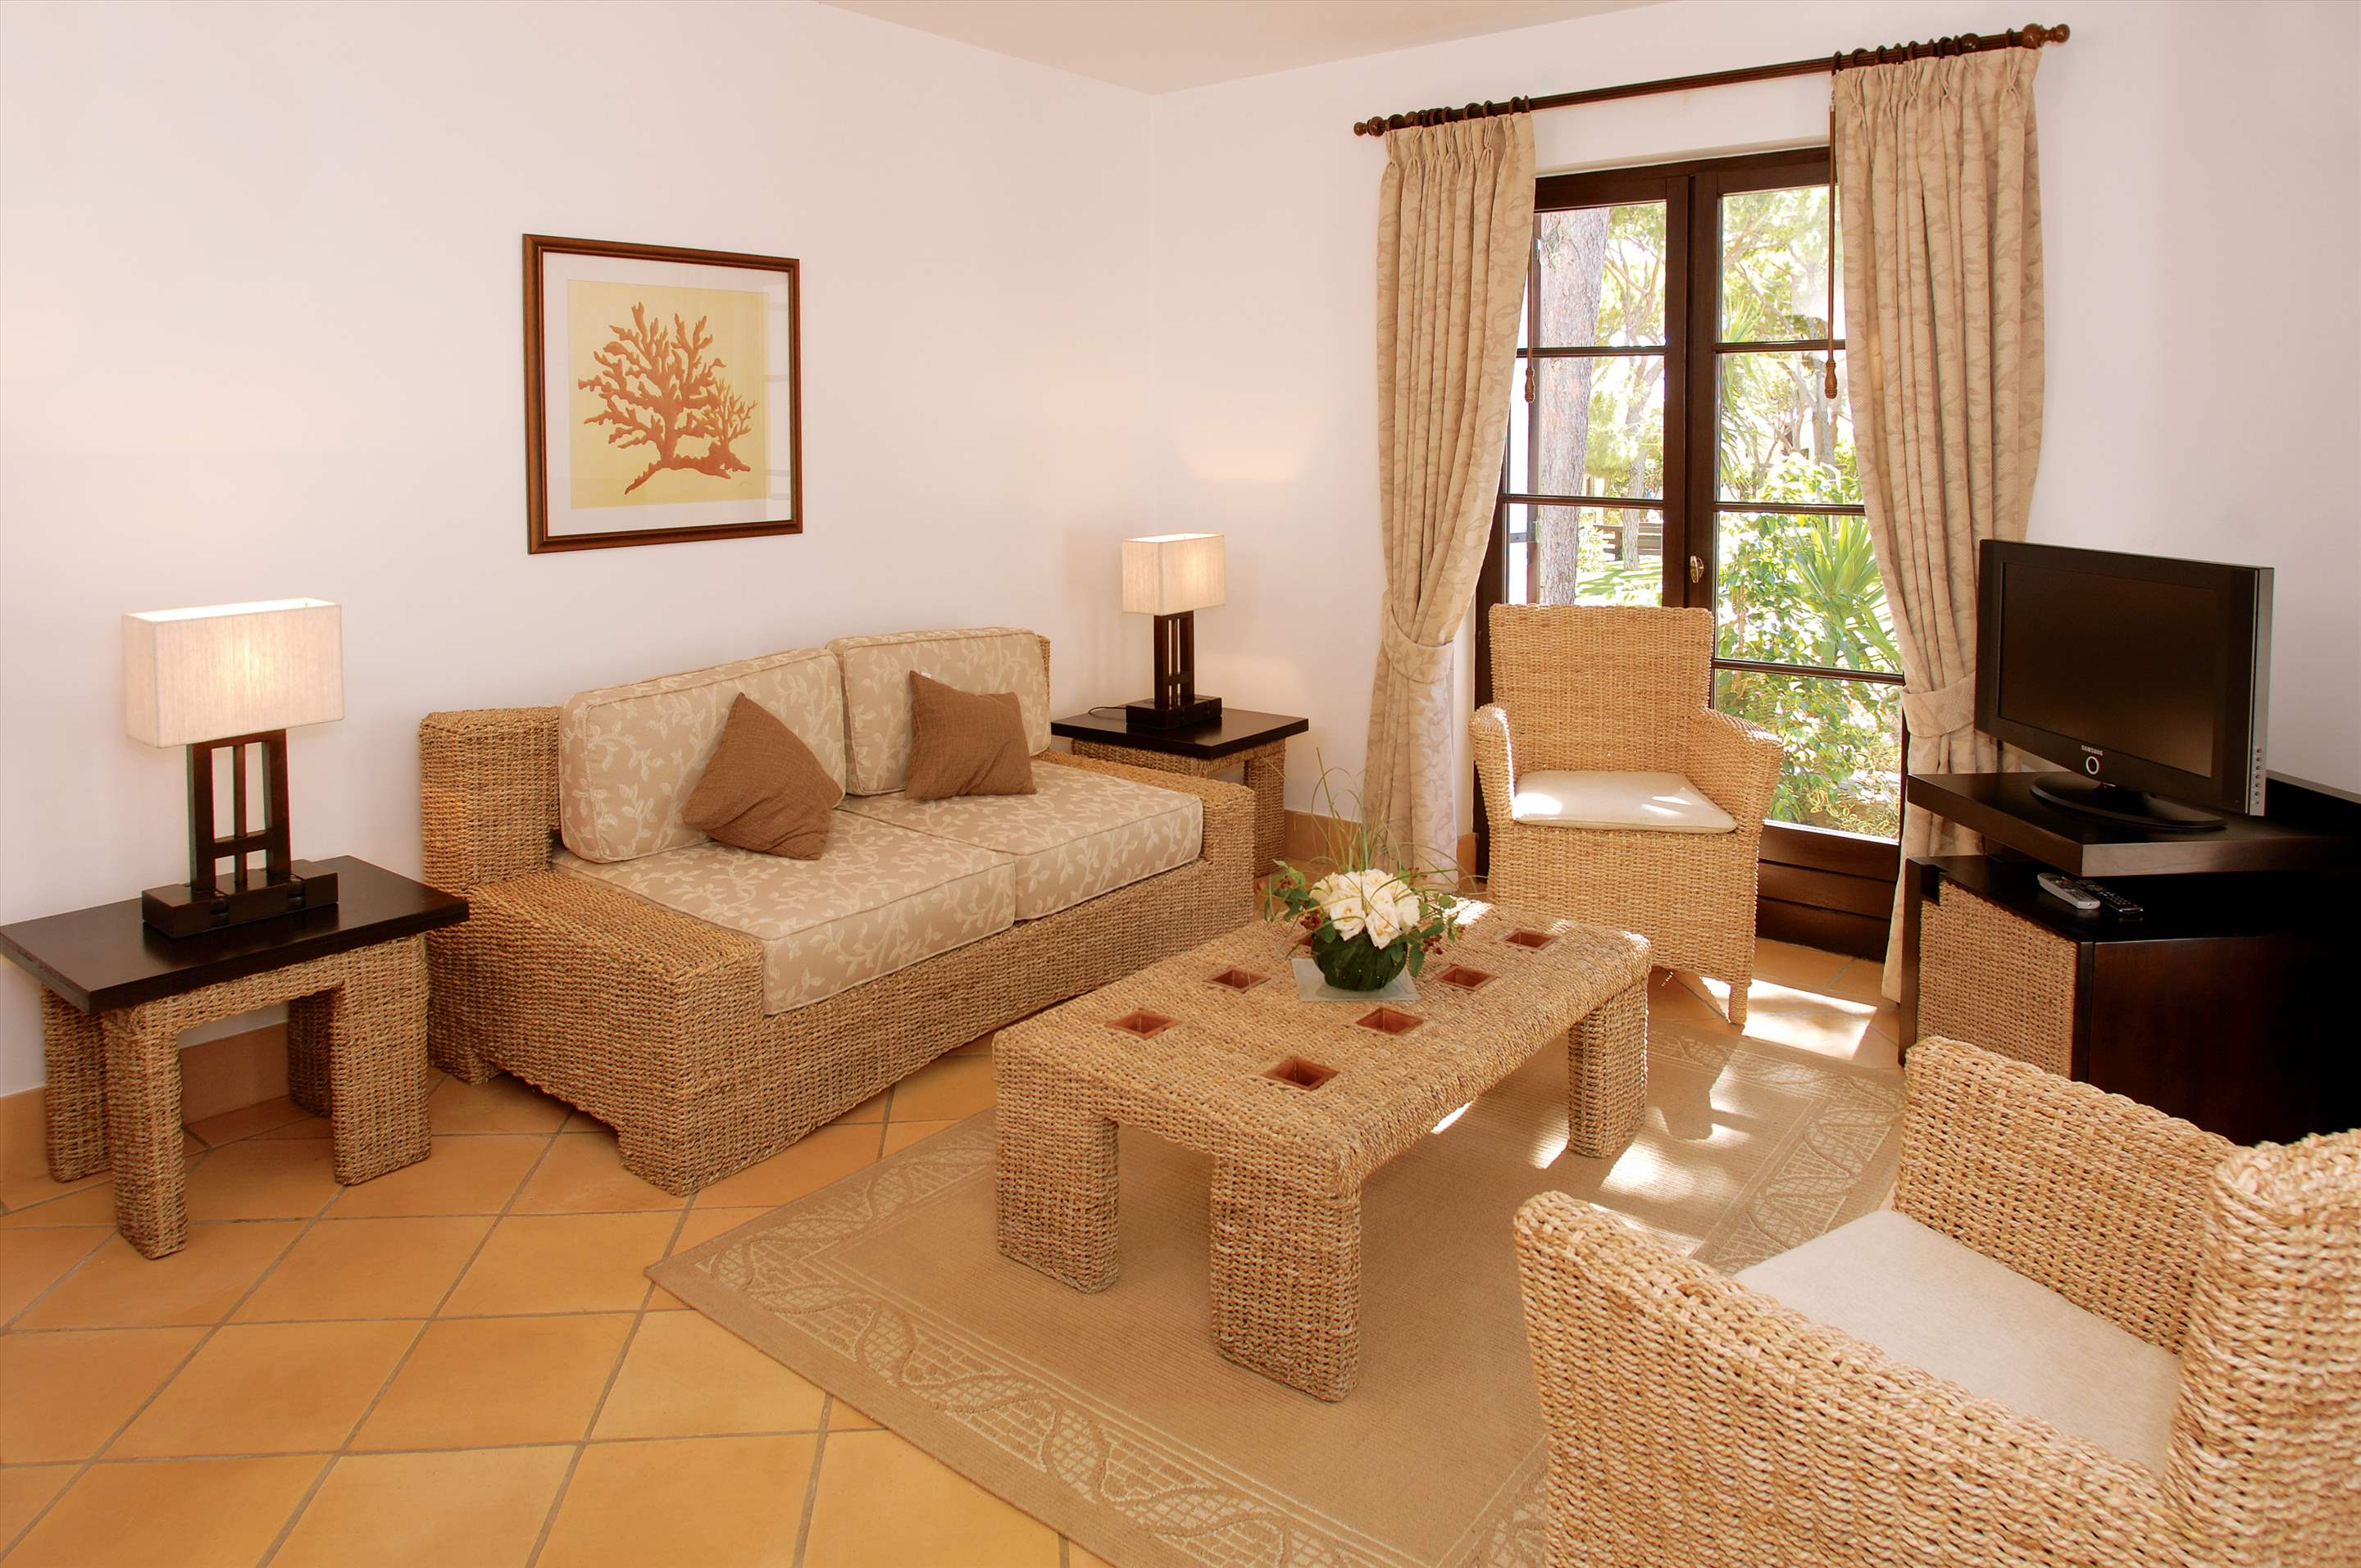 Pine Cliffs Village, 2 Bed Townhouse De Luxe, 2 bedroom villa in Pine Cliffs Resort, Algarve Photo #3